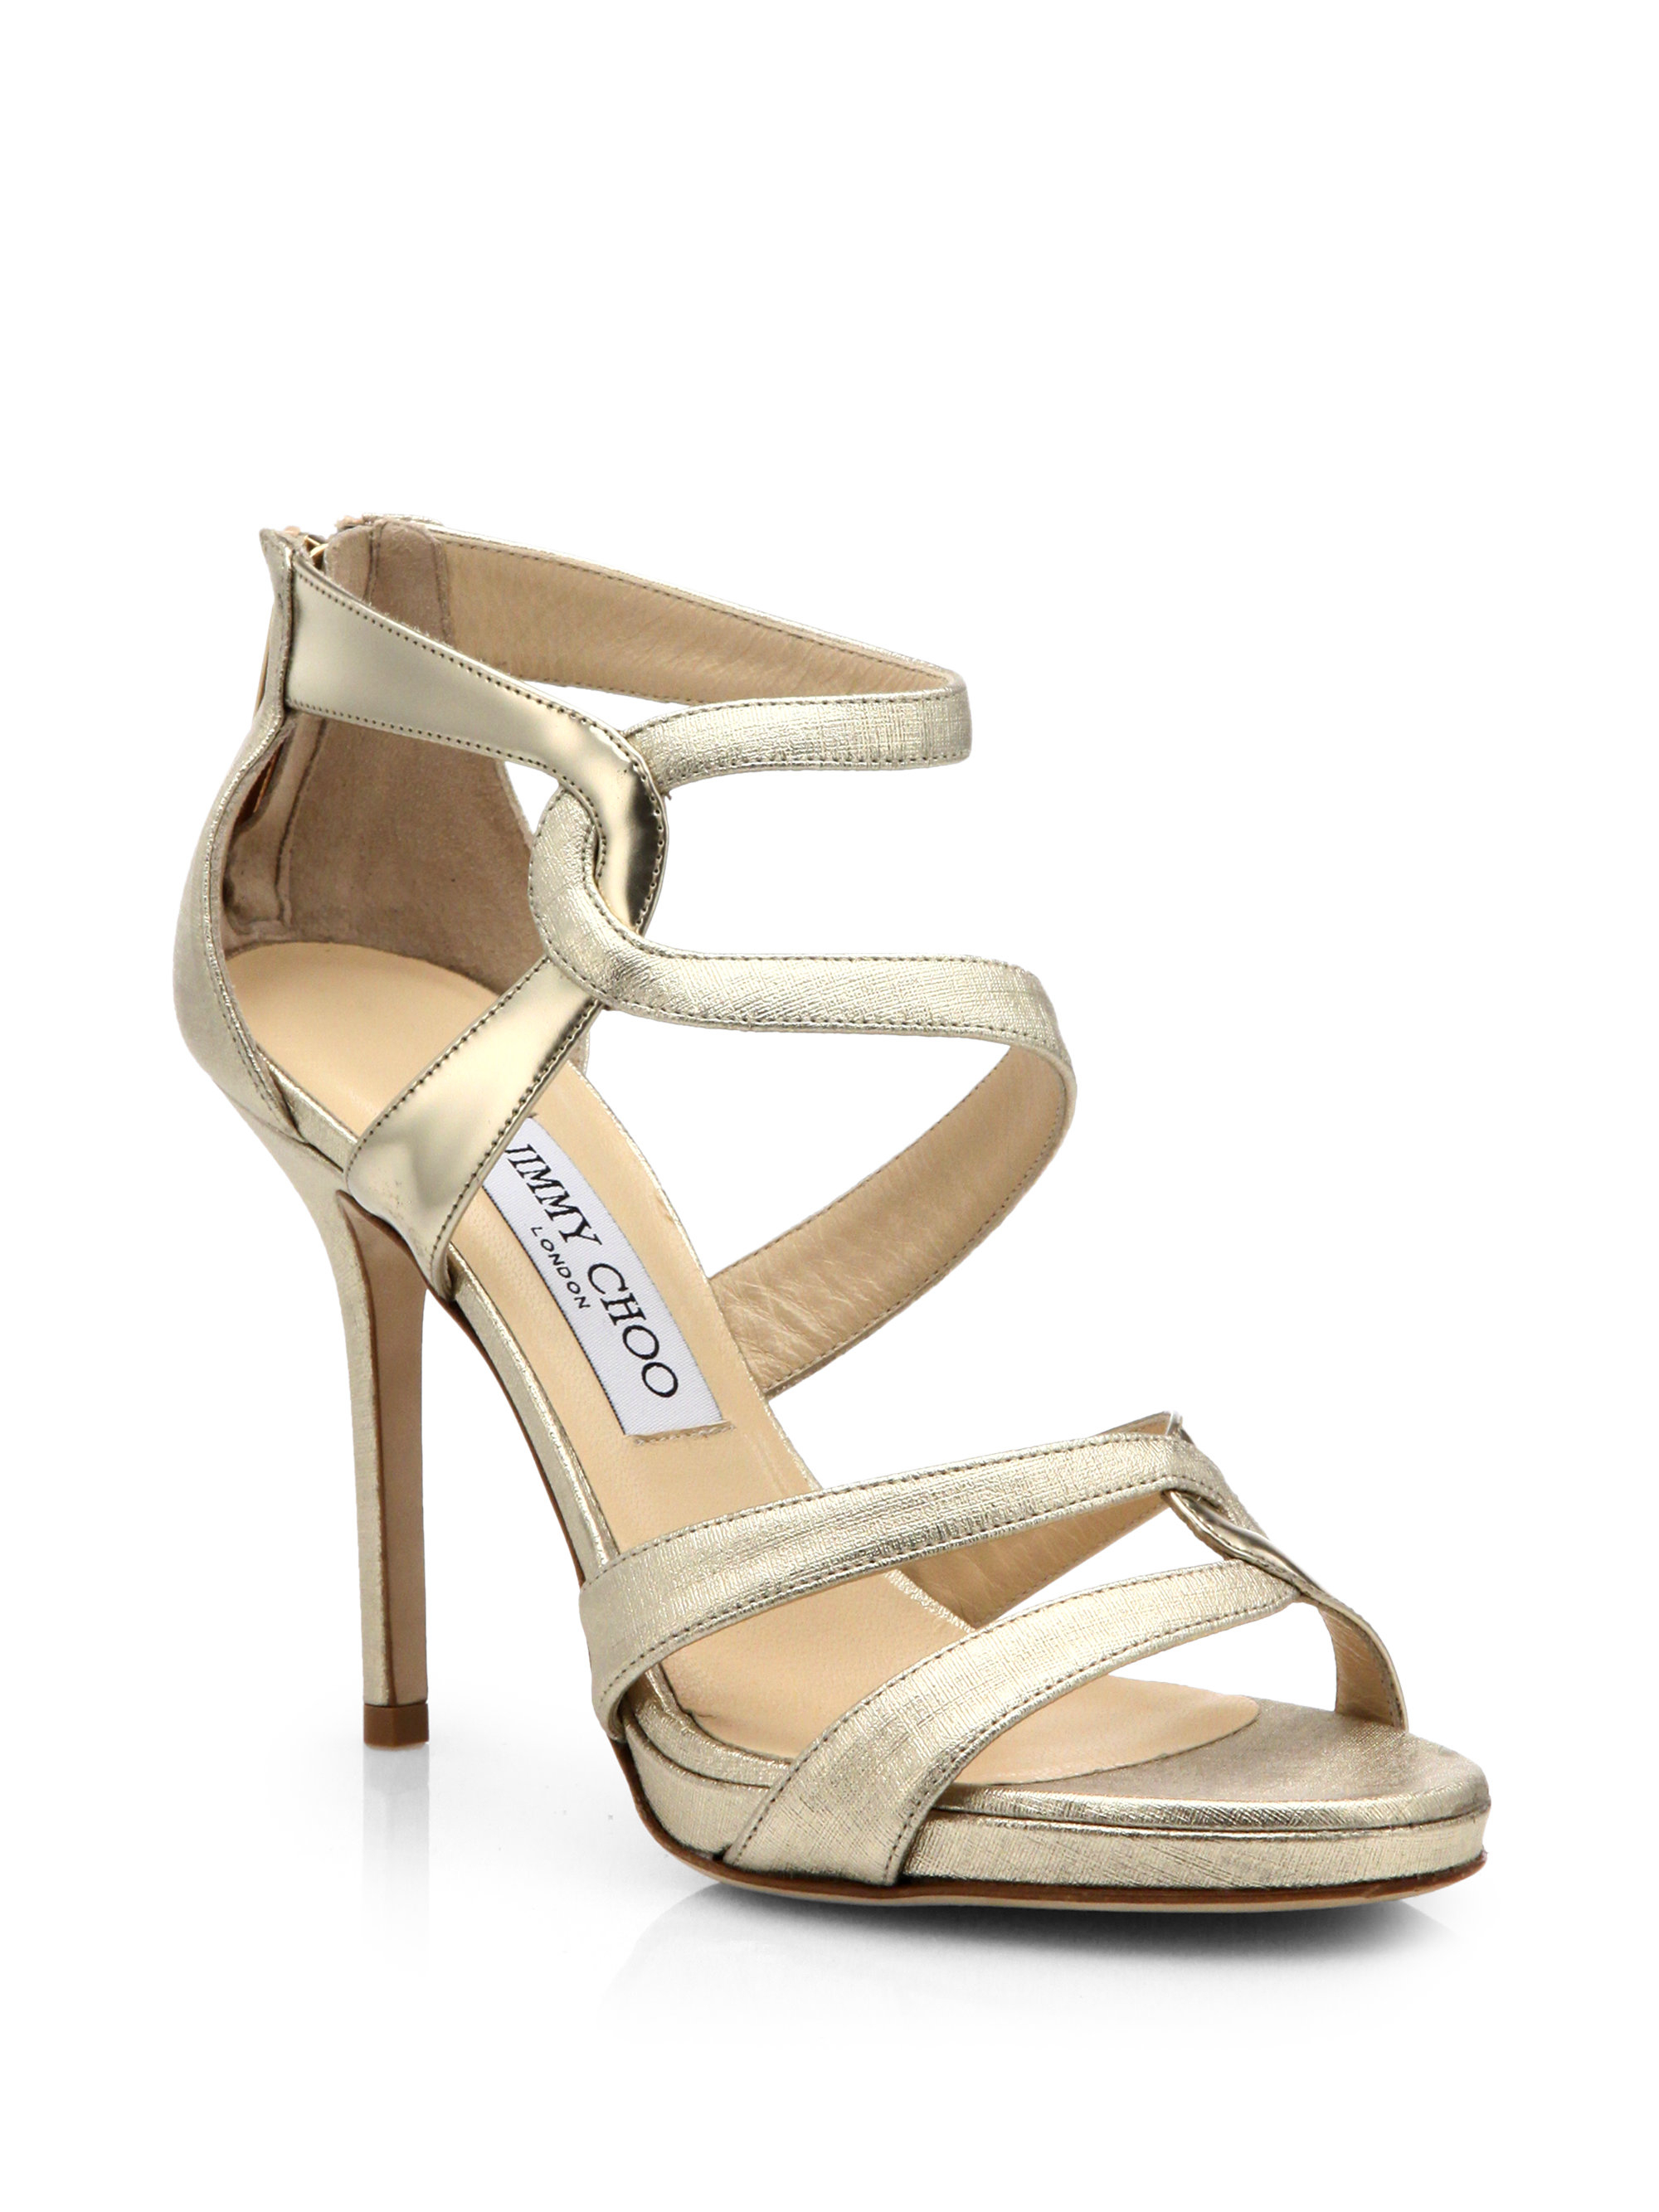 Jimmy Choo Metallic-Embossed Suede Sandals best place for sale cheap sale shop for KuYJc1v